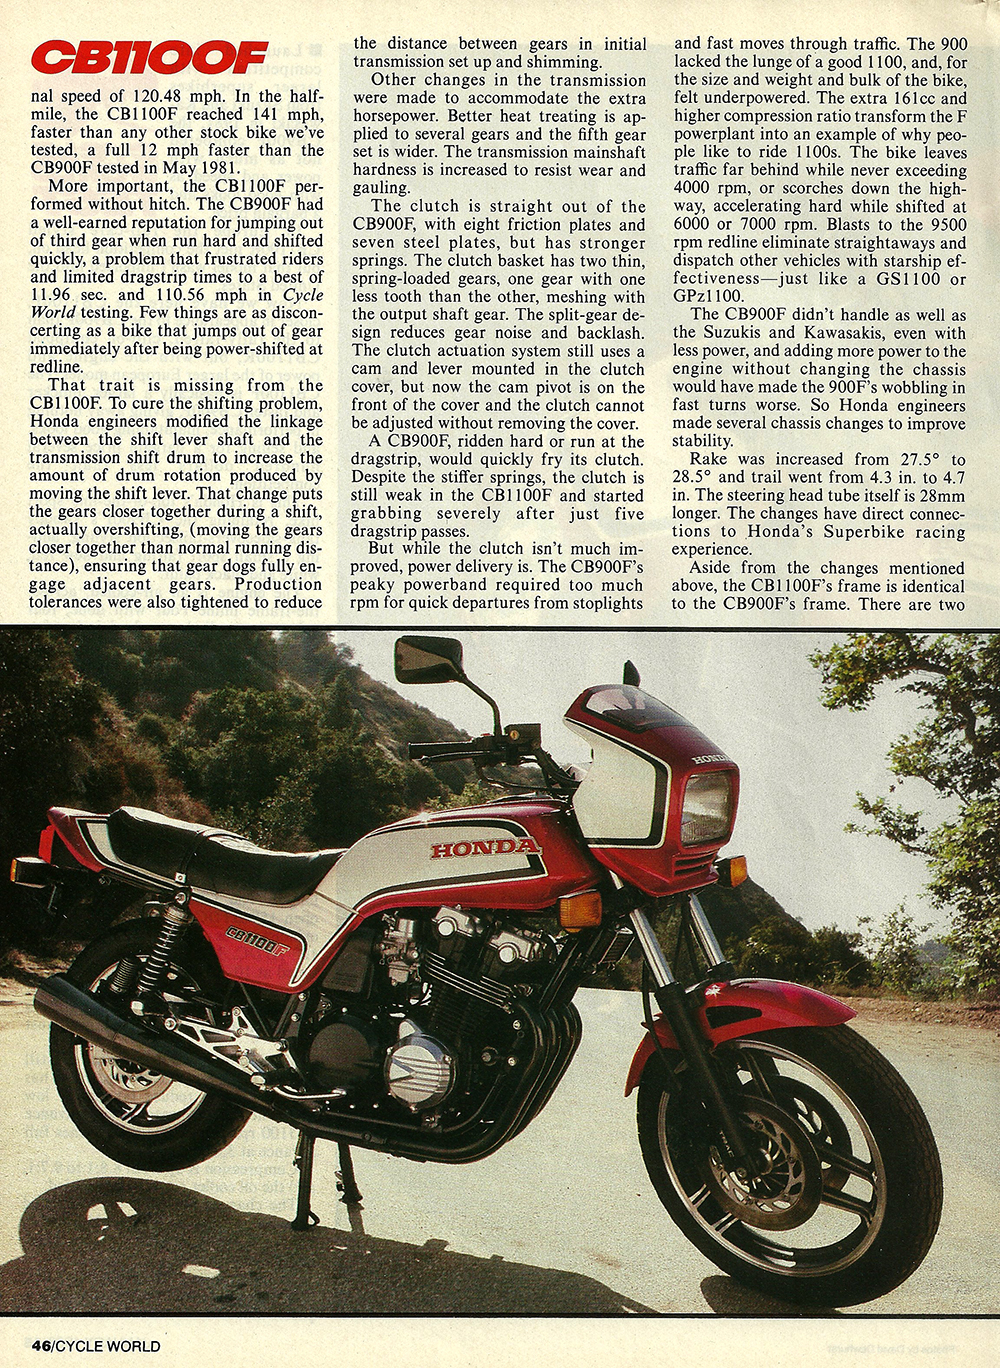 1983 Honda CB1100F road test 03.jpg